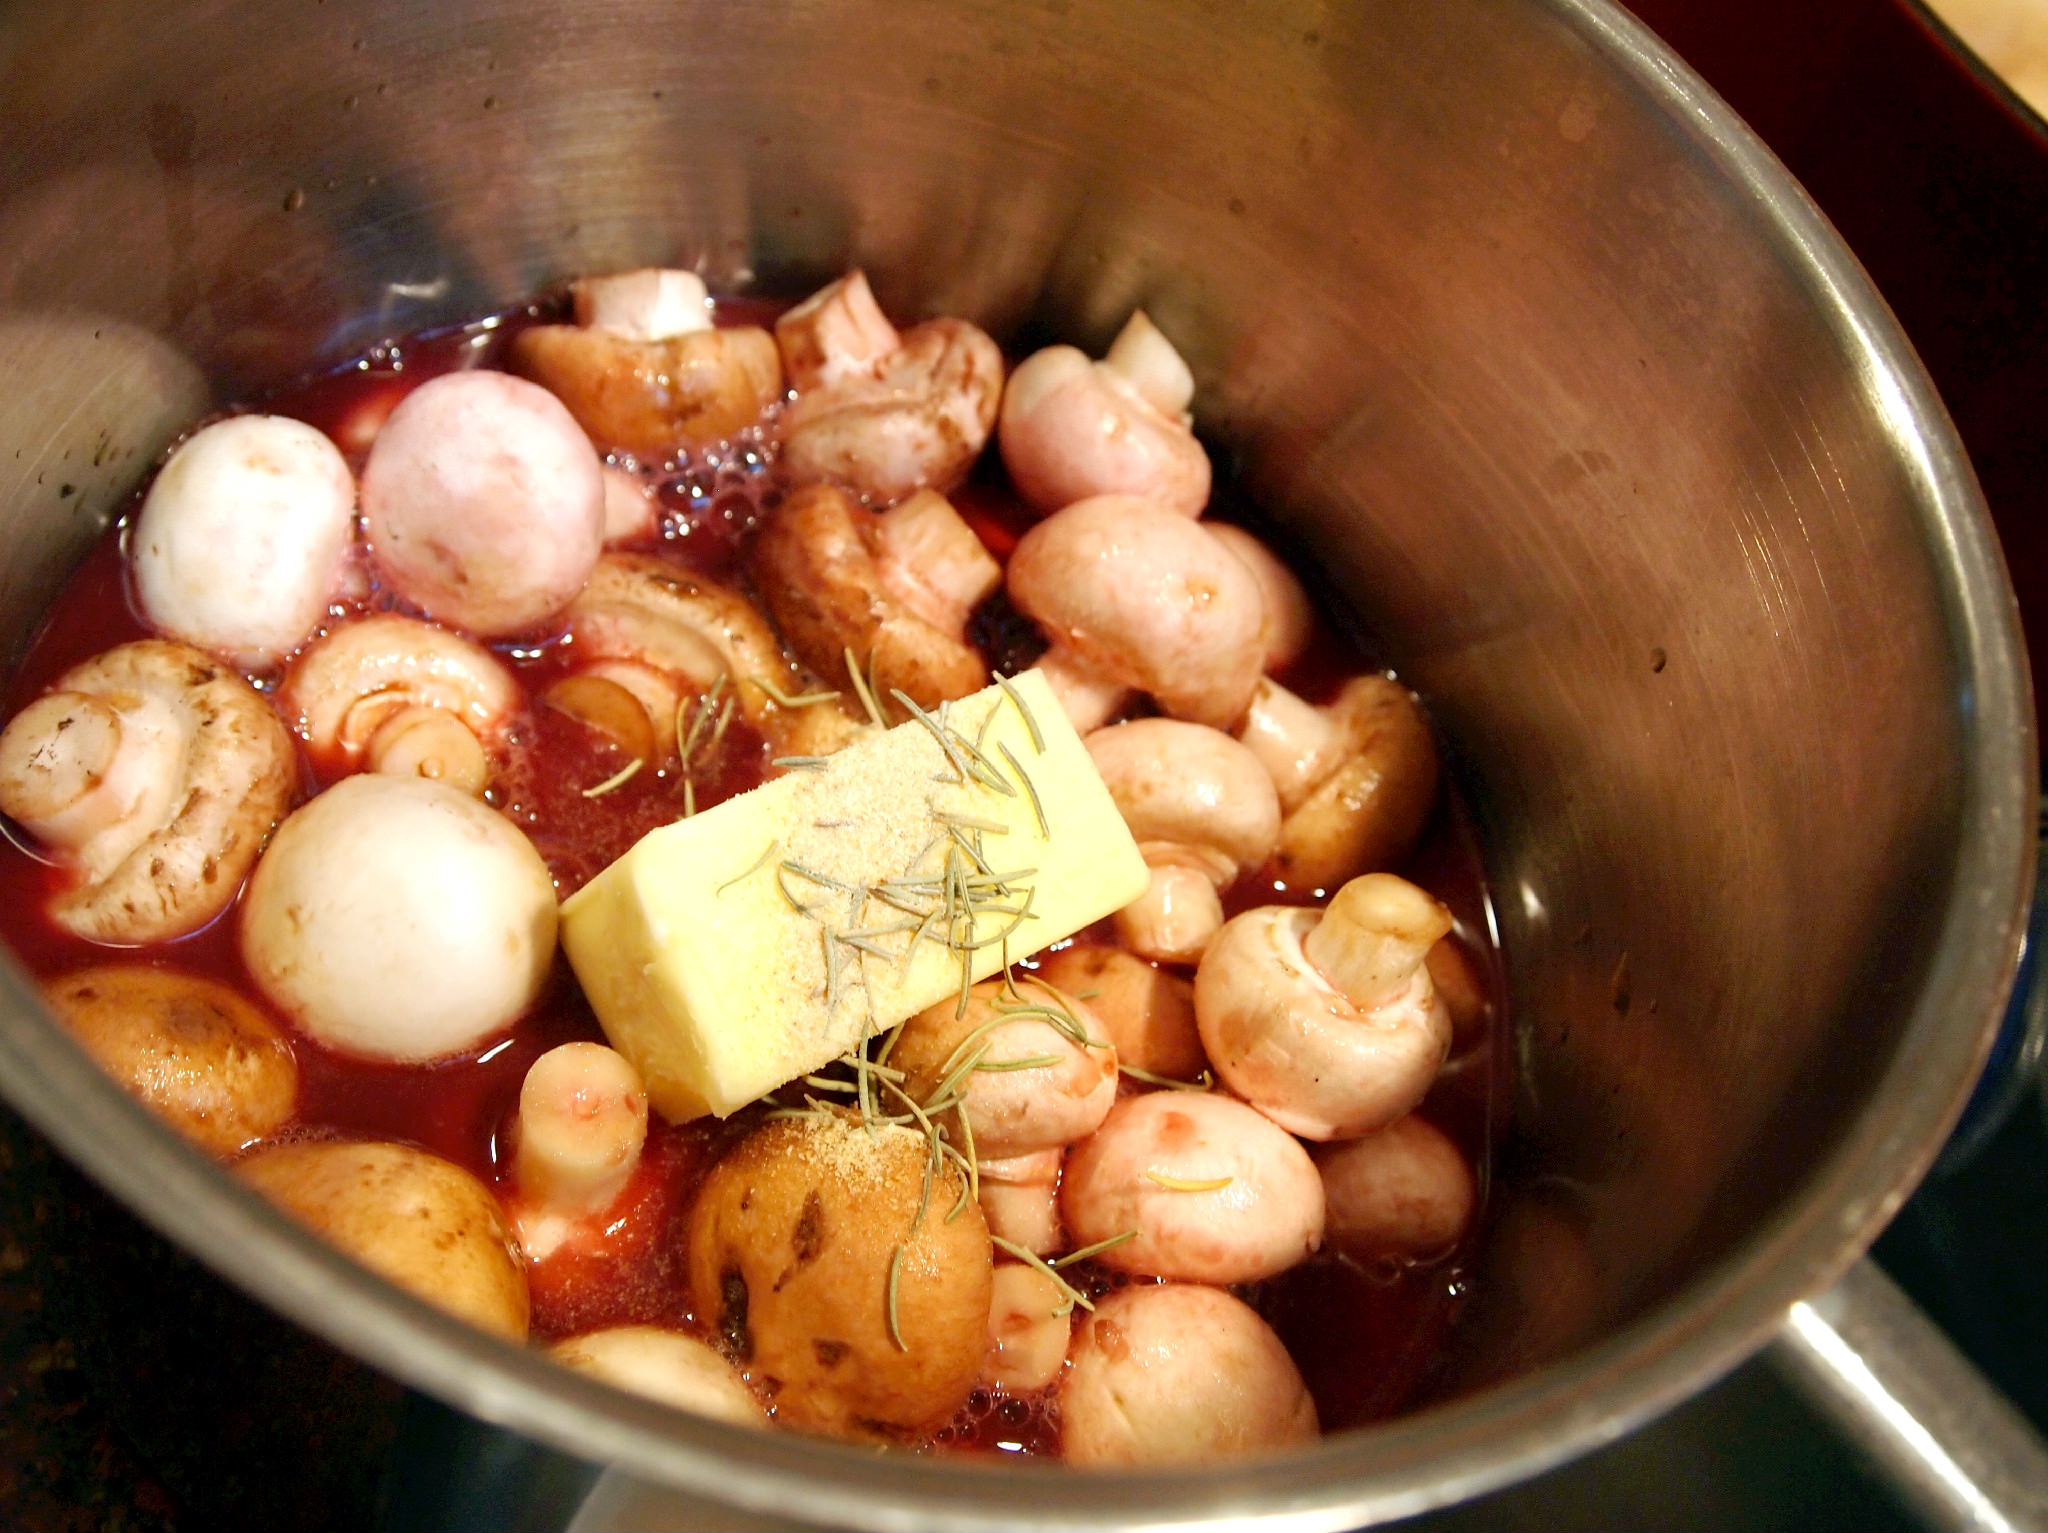 making Merlot simmered mushrooms